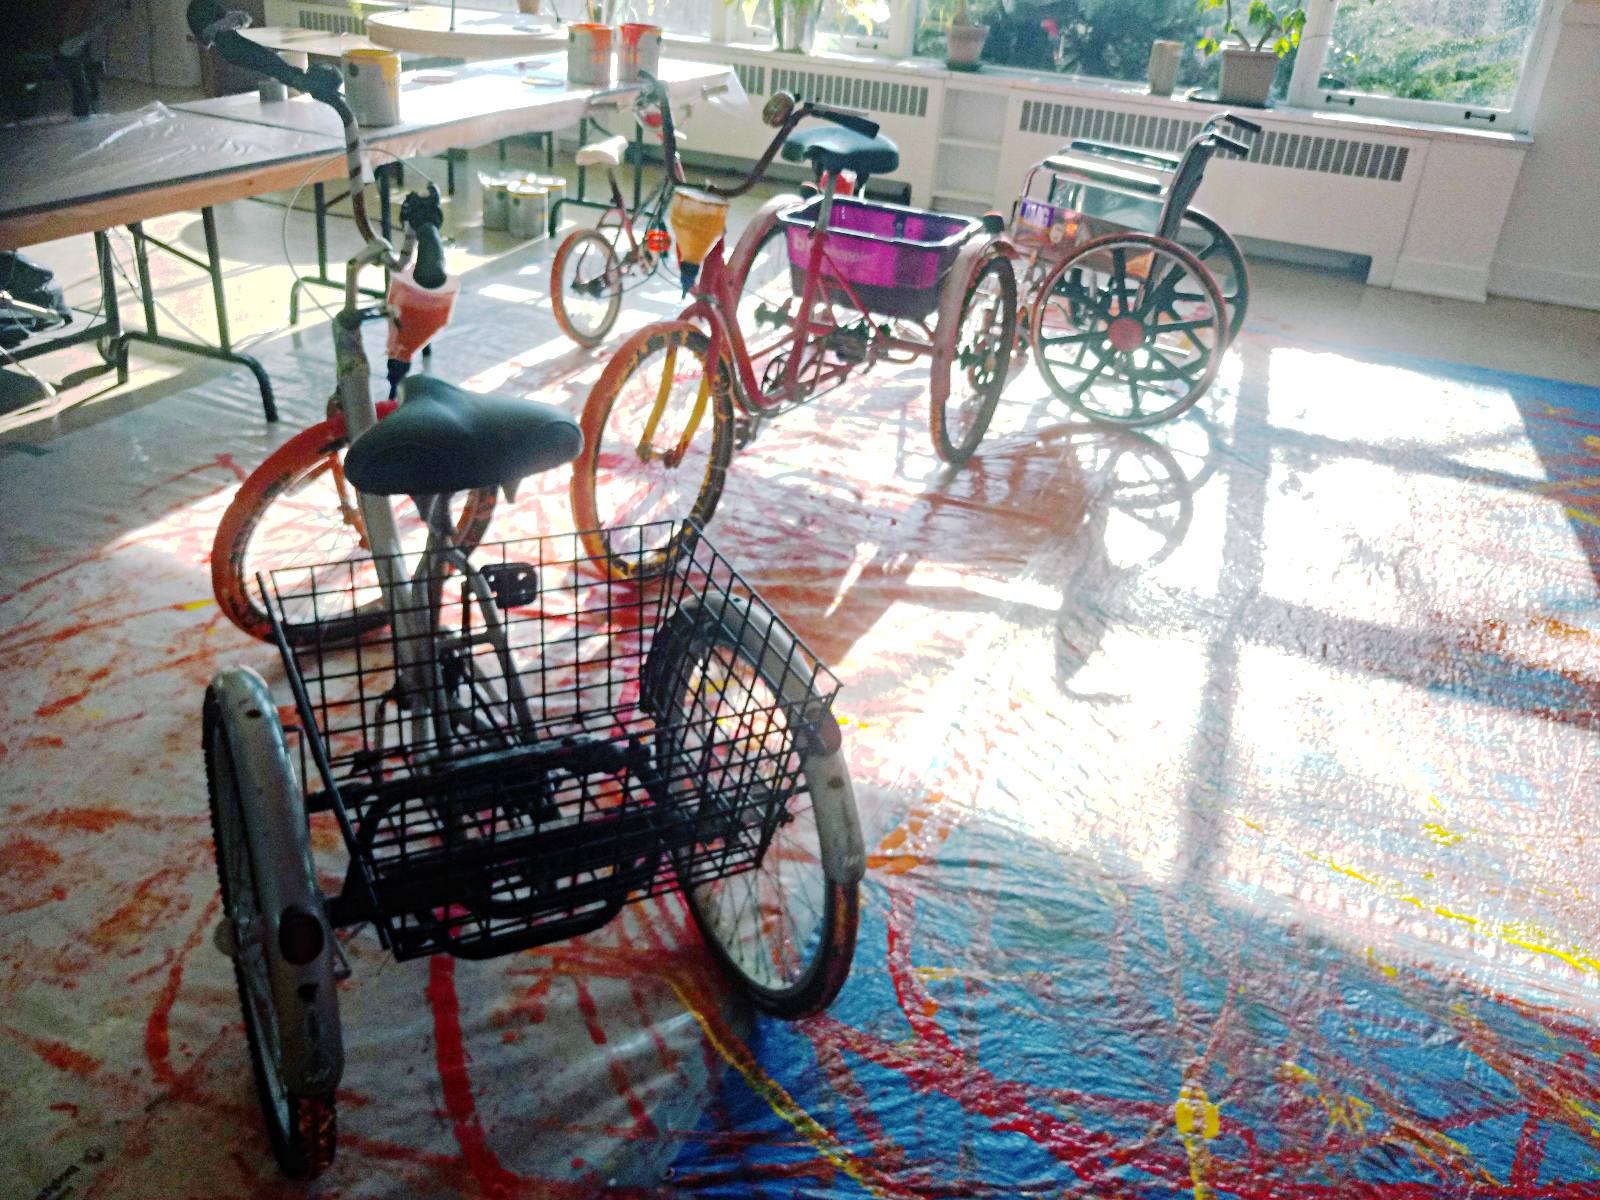 The painting activity marked my first ride on an adult trike. Despite the  added rear stability, these trikes can be a bit unwieldy to steer at first  with ...